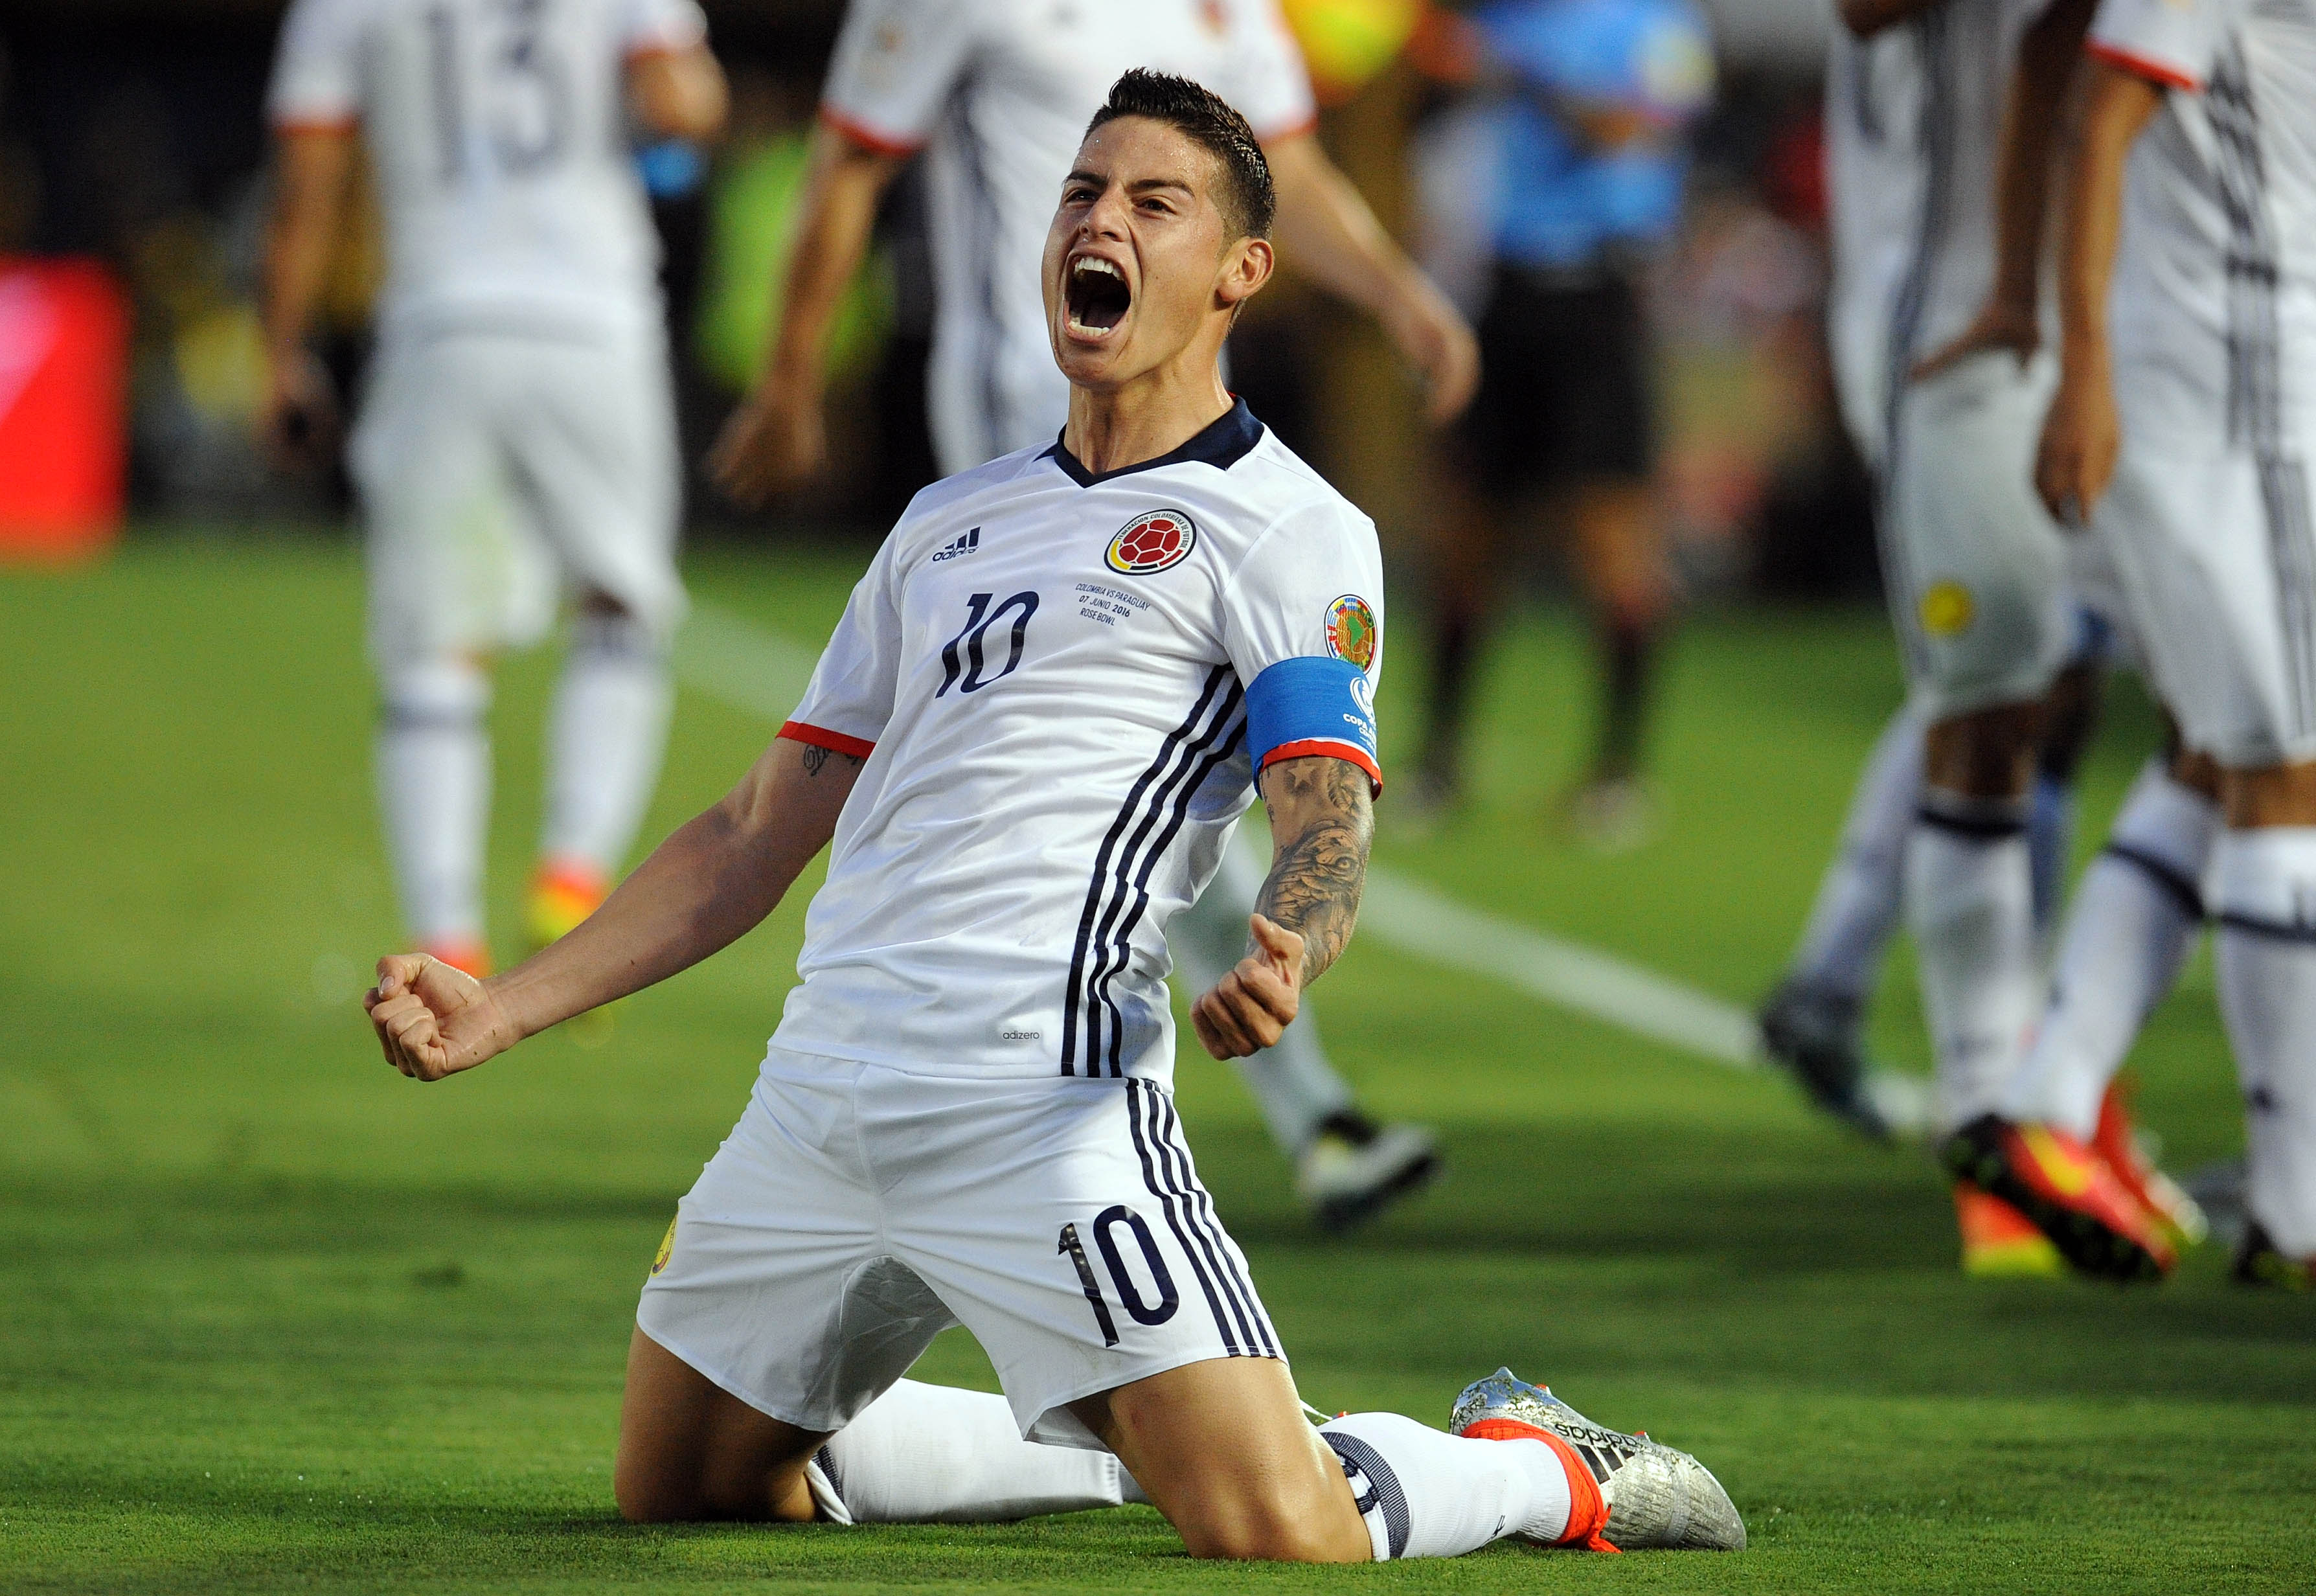 Jaimz or Hai-mez, say it how you like. But watch for James Rodriguez to be the key to the match.